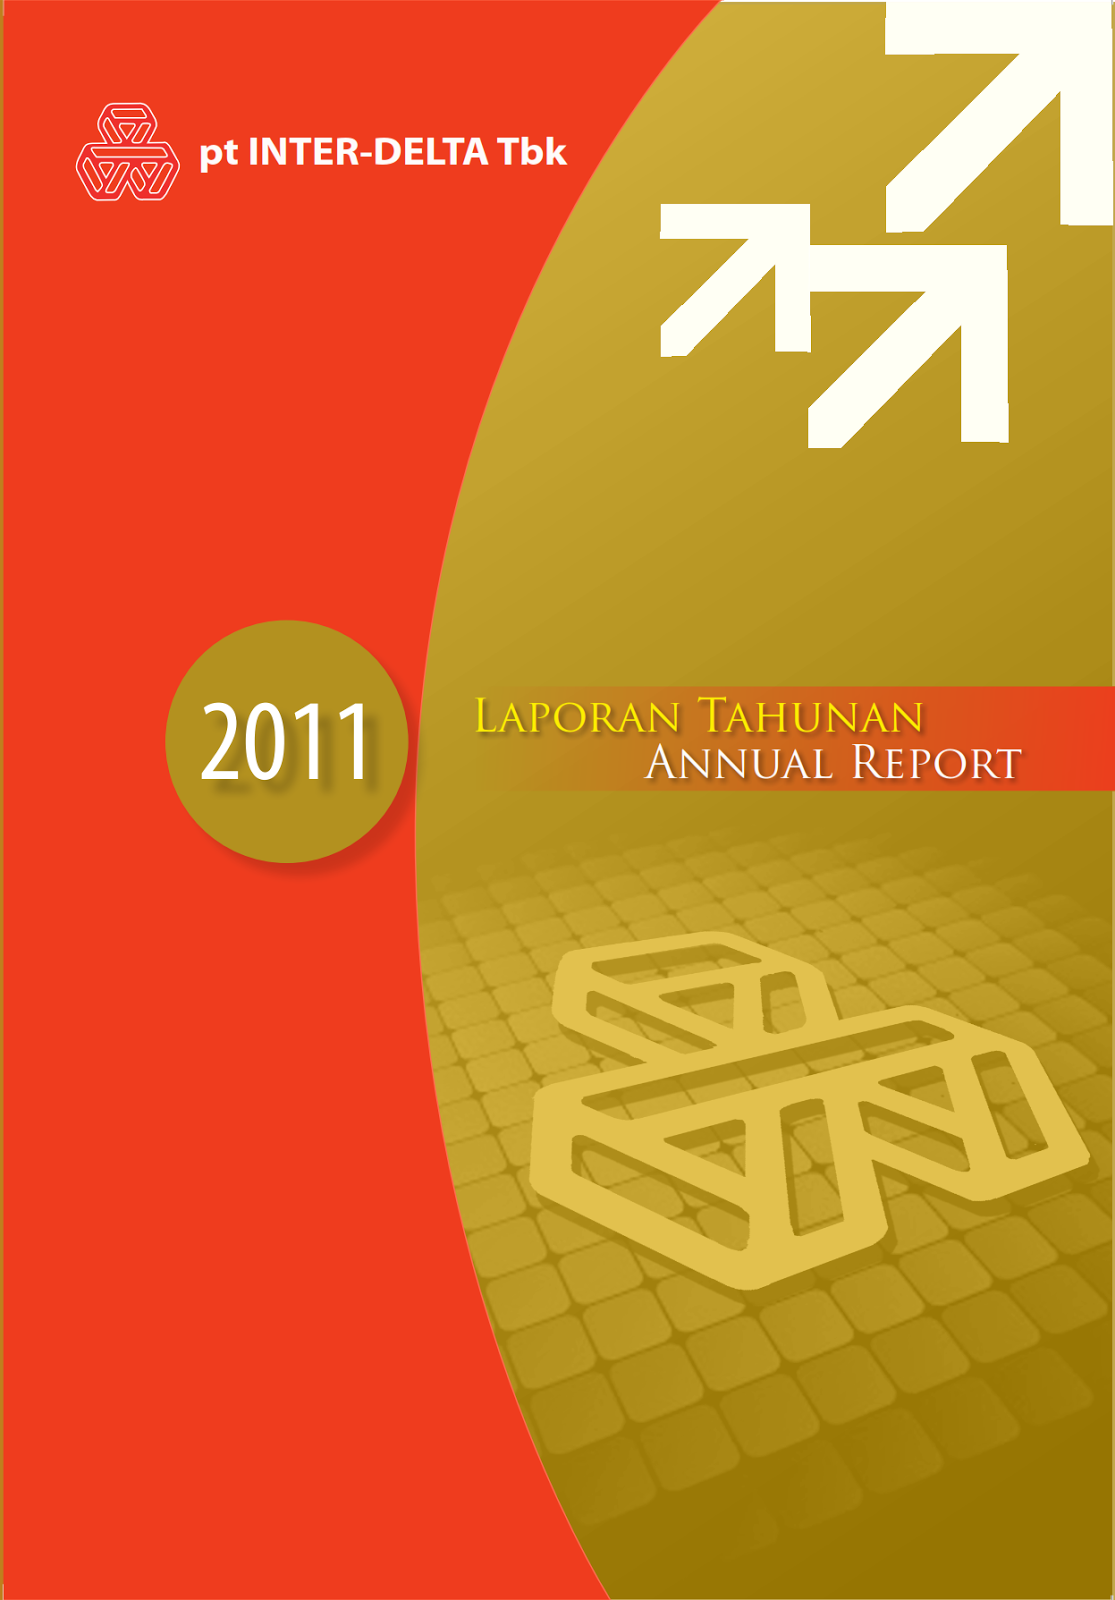 https://www.dropbox.com/s/dj671sq6tvnkpxg/ANNUALREPORT%20PTID2011.pdf?dl=0